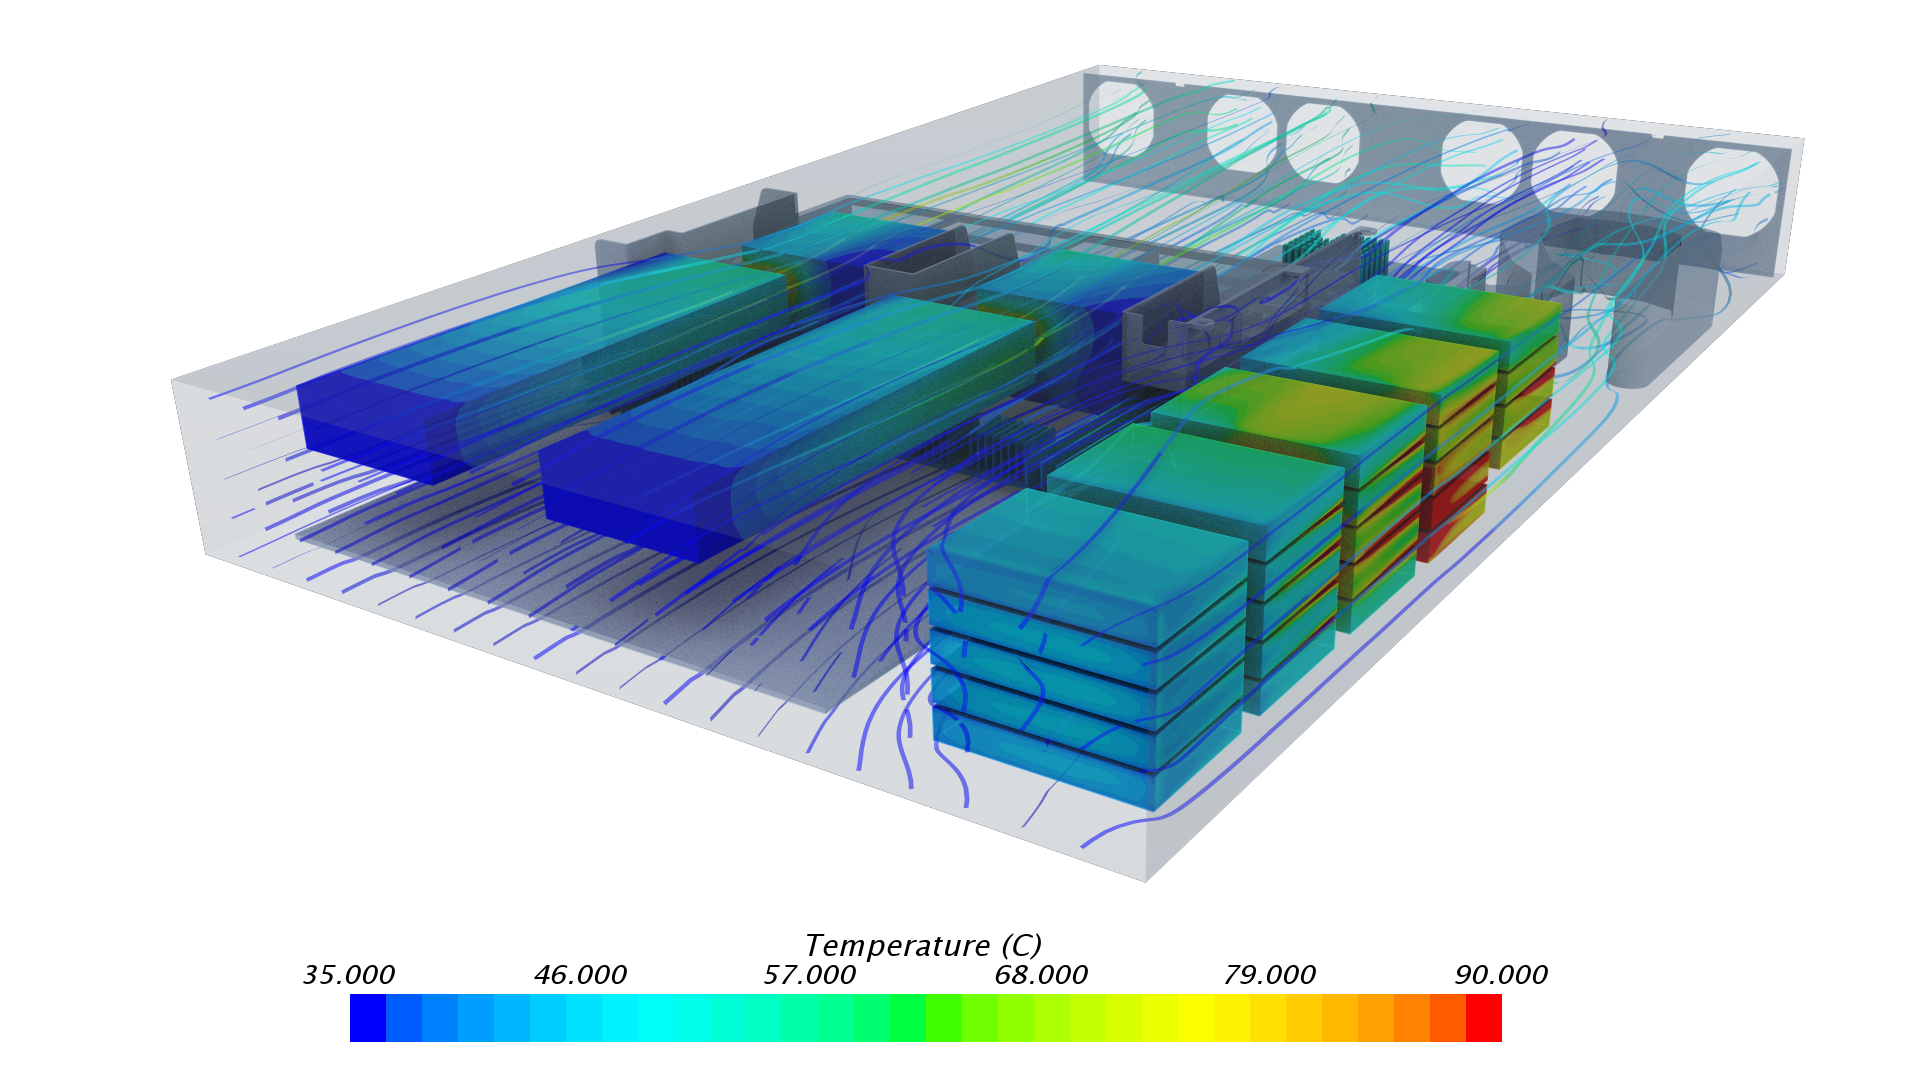 Visualization of Server Component Temperatures as Predicted By CFD Simulation